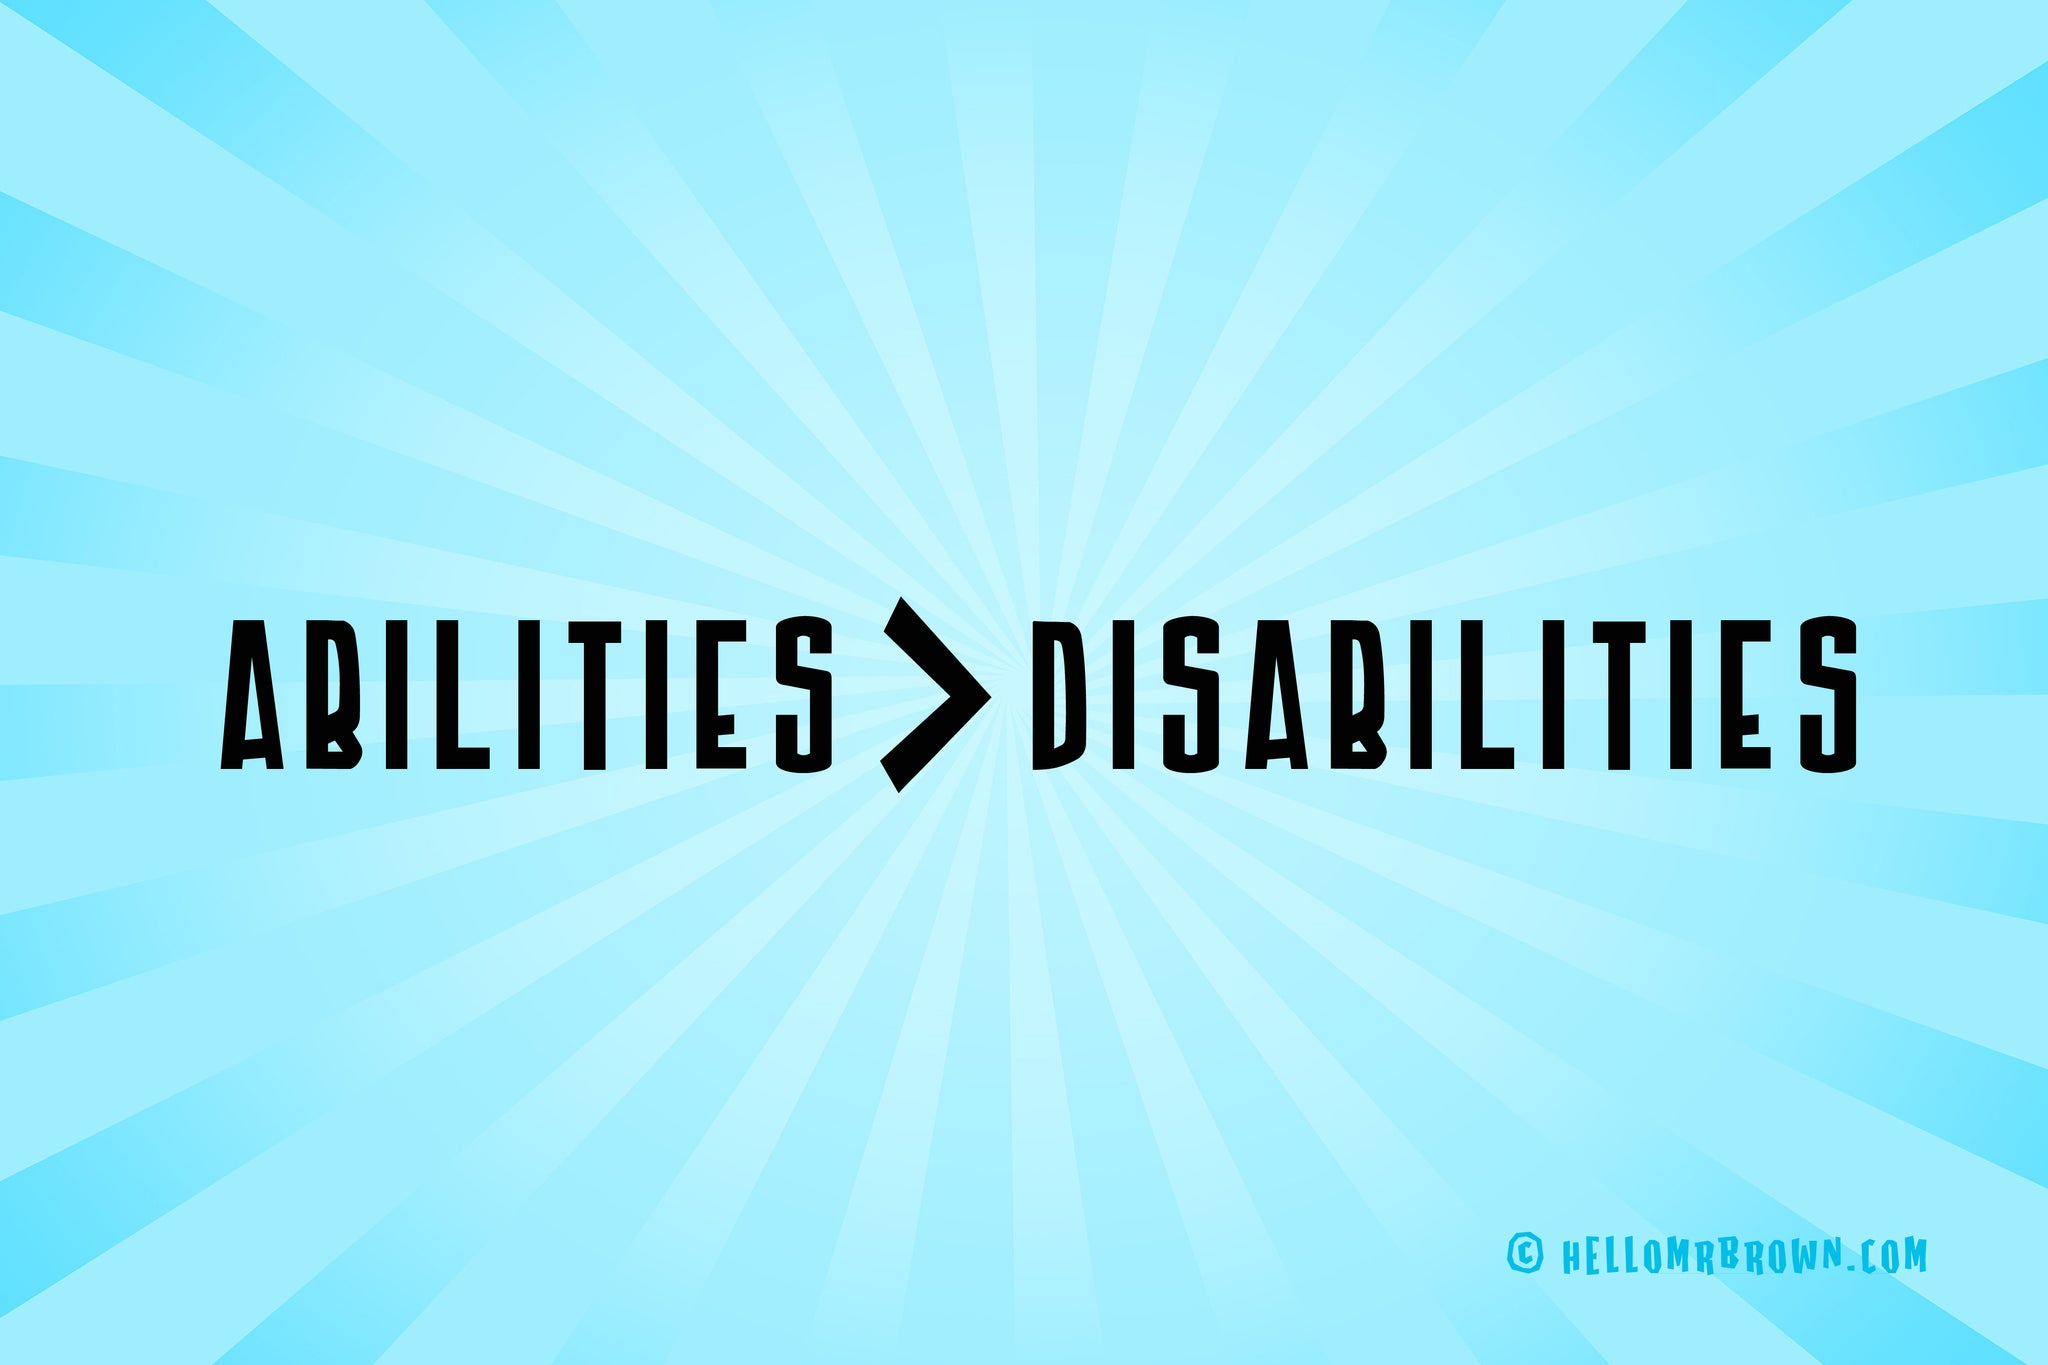 Abilities > Disabilities - We Are Brave Series